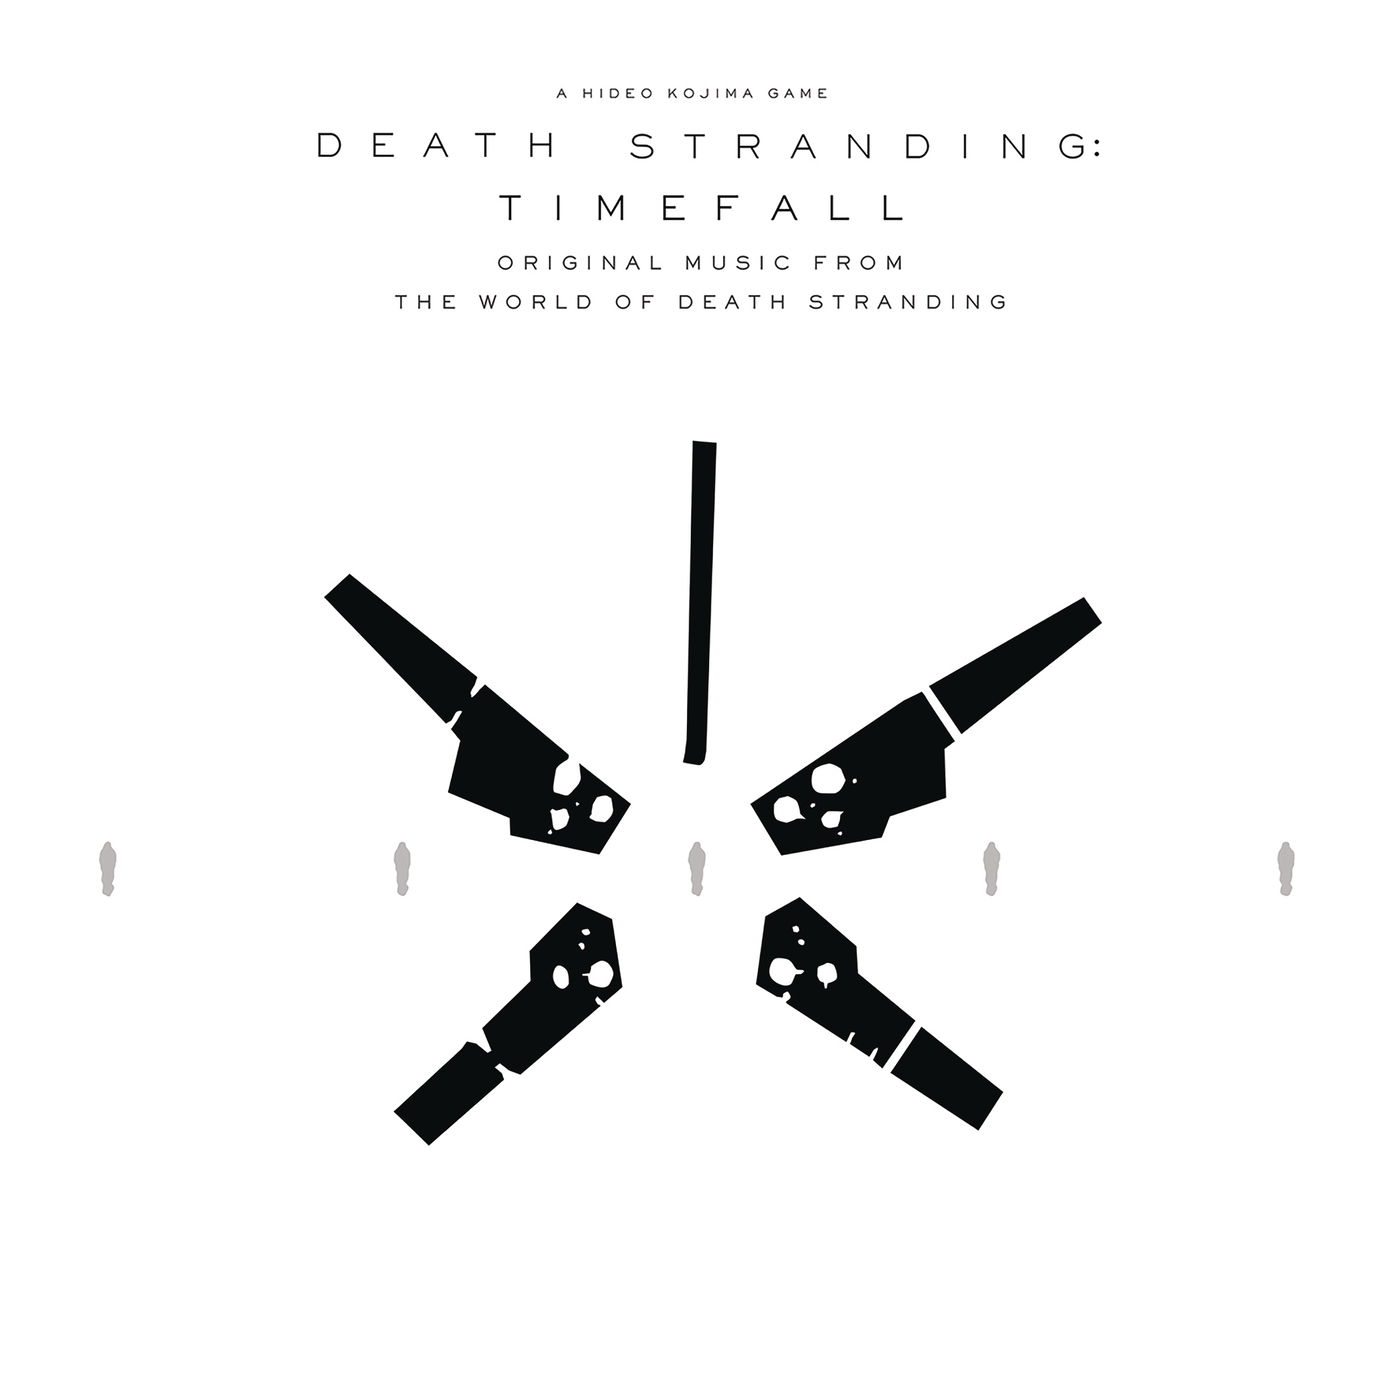 DEATH STRANDING: Timefall (Original Music from the World of Death Stranding) - Death Stranding: Timefall